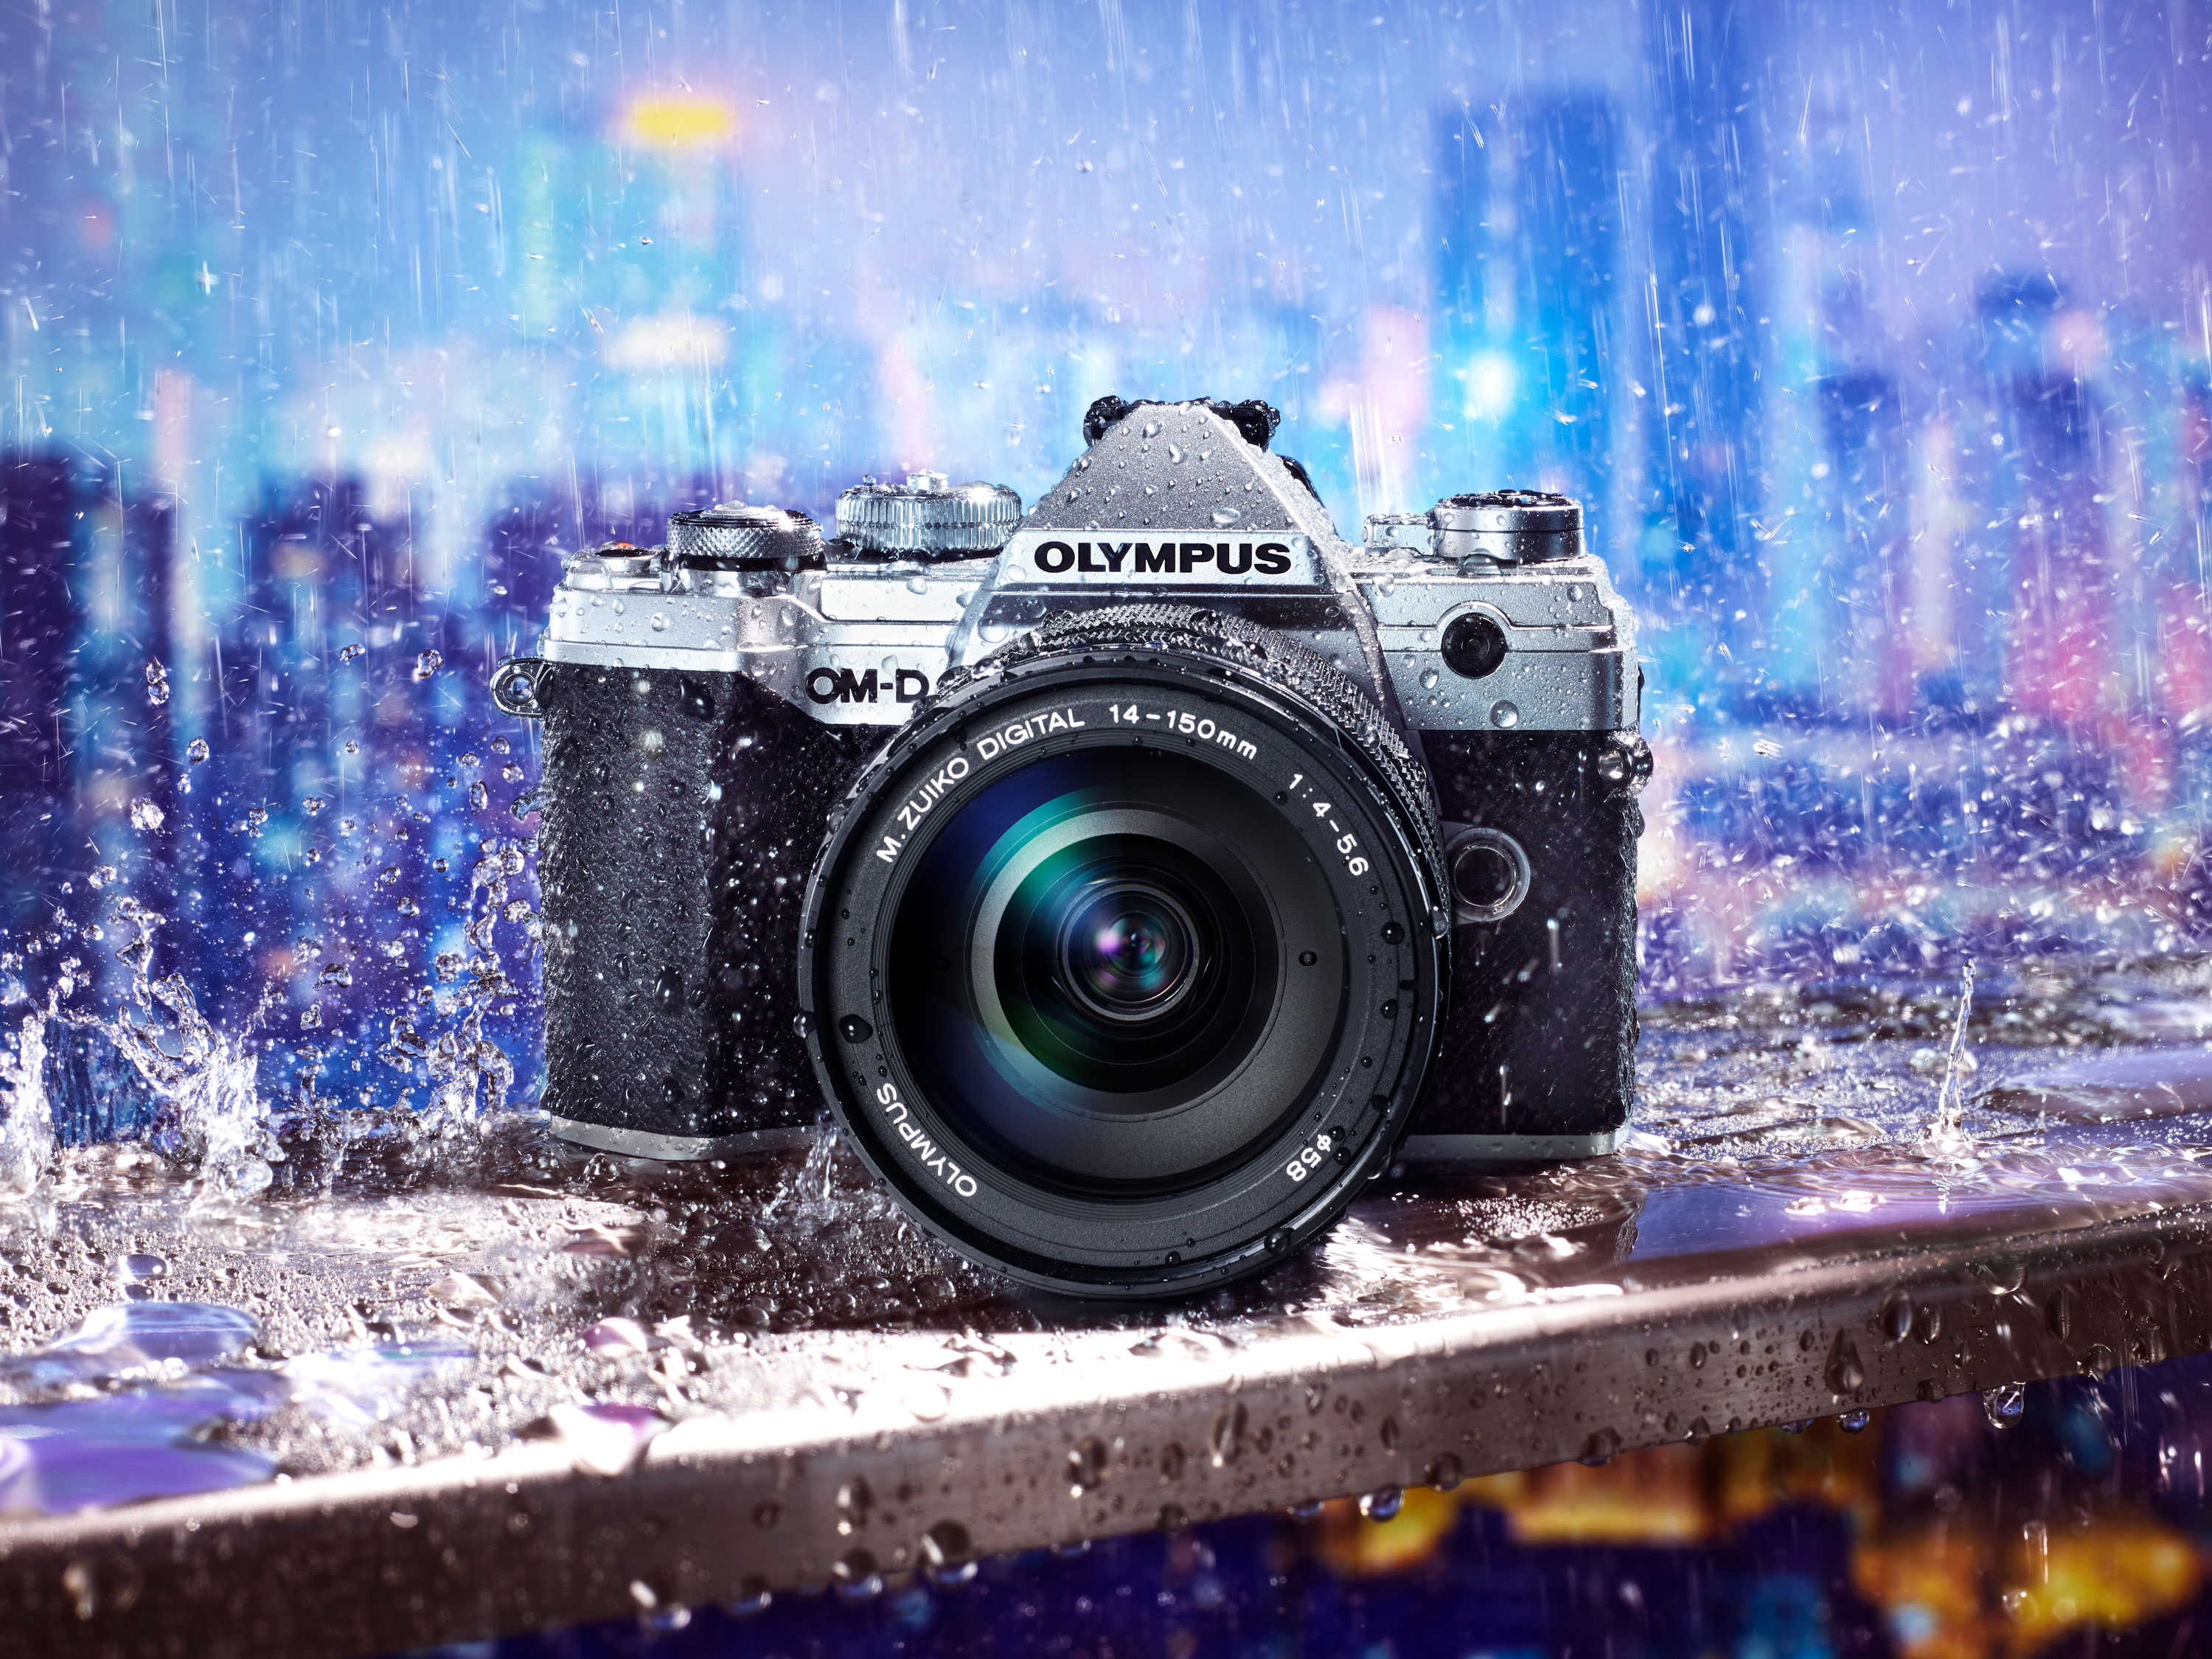 New Olympus OM-D® E-M5 mark iii empowers you to break free from heavy gear